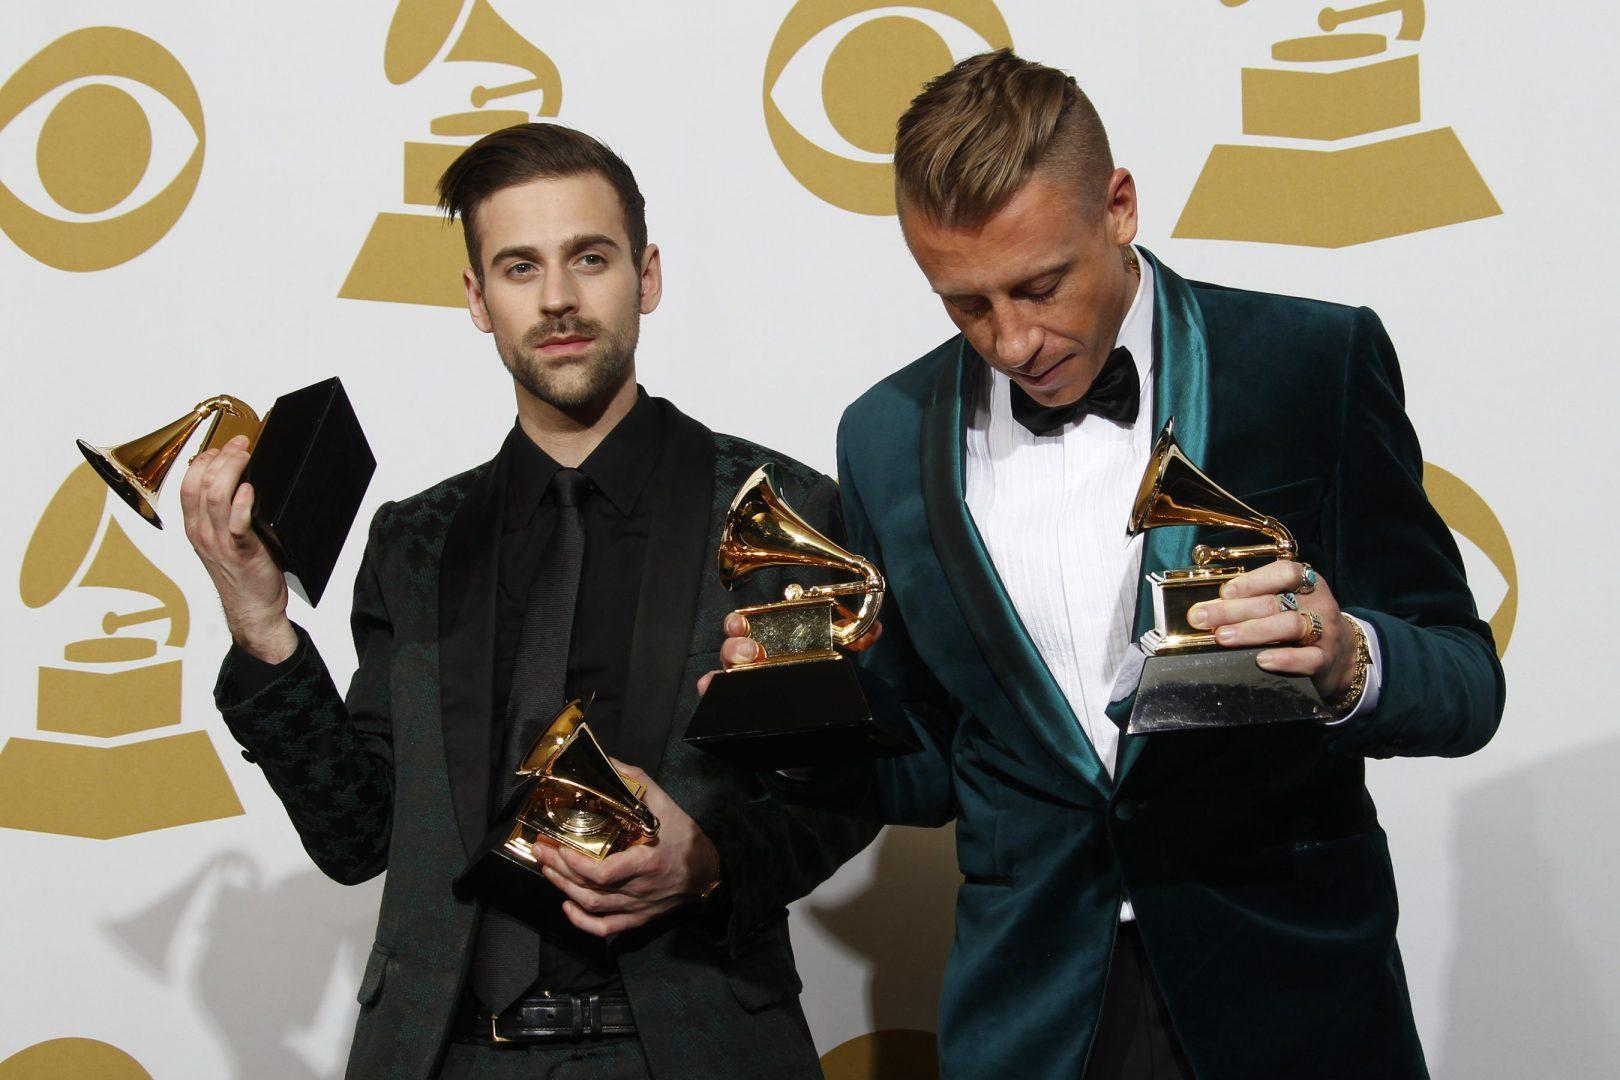 Ryan Lewis & Macklemore won four awards, including Best New Artist, Best Rap Song, and Best Rap Album (Allen J. Schaben via MCT)